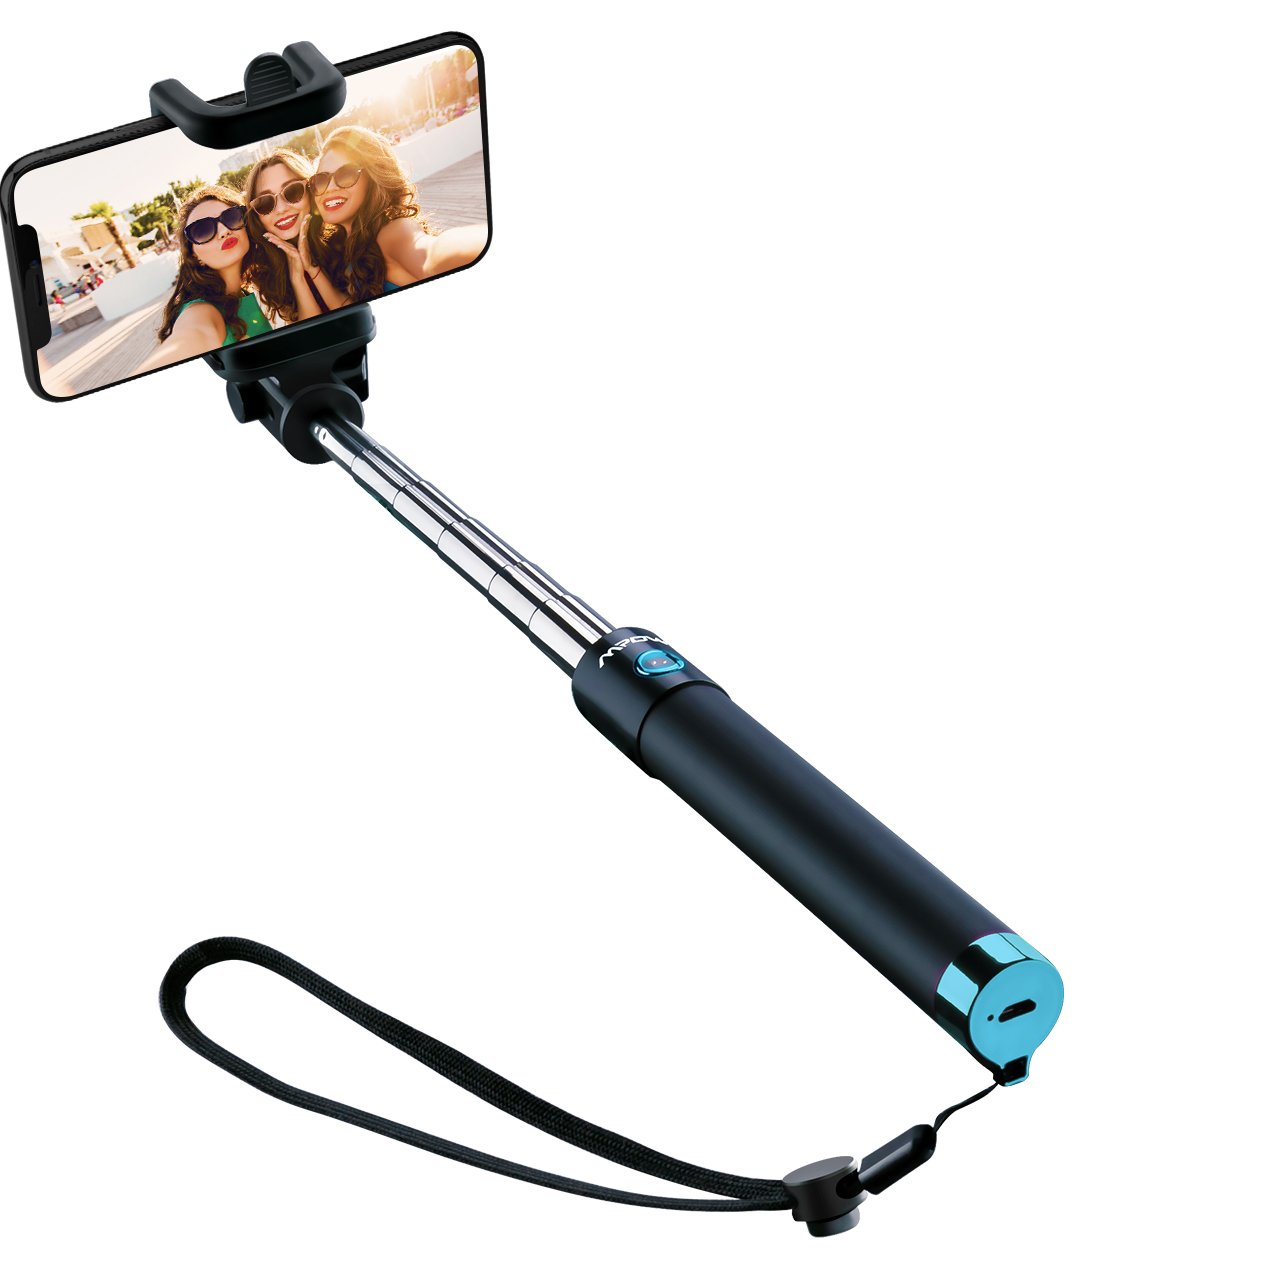 Wireless Selfie Stick, Mpow 270° Adjustable Bluetooth Selfie Stick with Built-in Bluetooth Remote Shutter Support Video Record for iPhone XS/XS Max/XR/X/8/8P/7/7P/6s/6P, Galaxy S5/S6/S7/S8 (Pink) MBT8P-PS-1